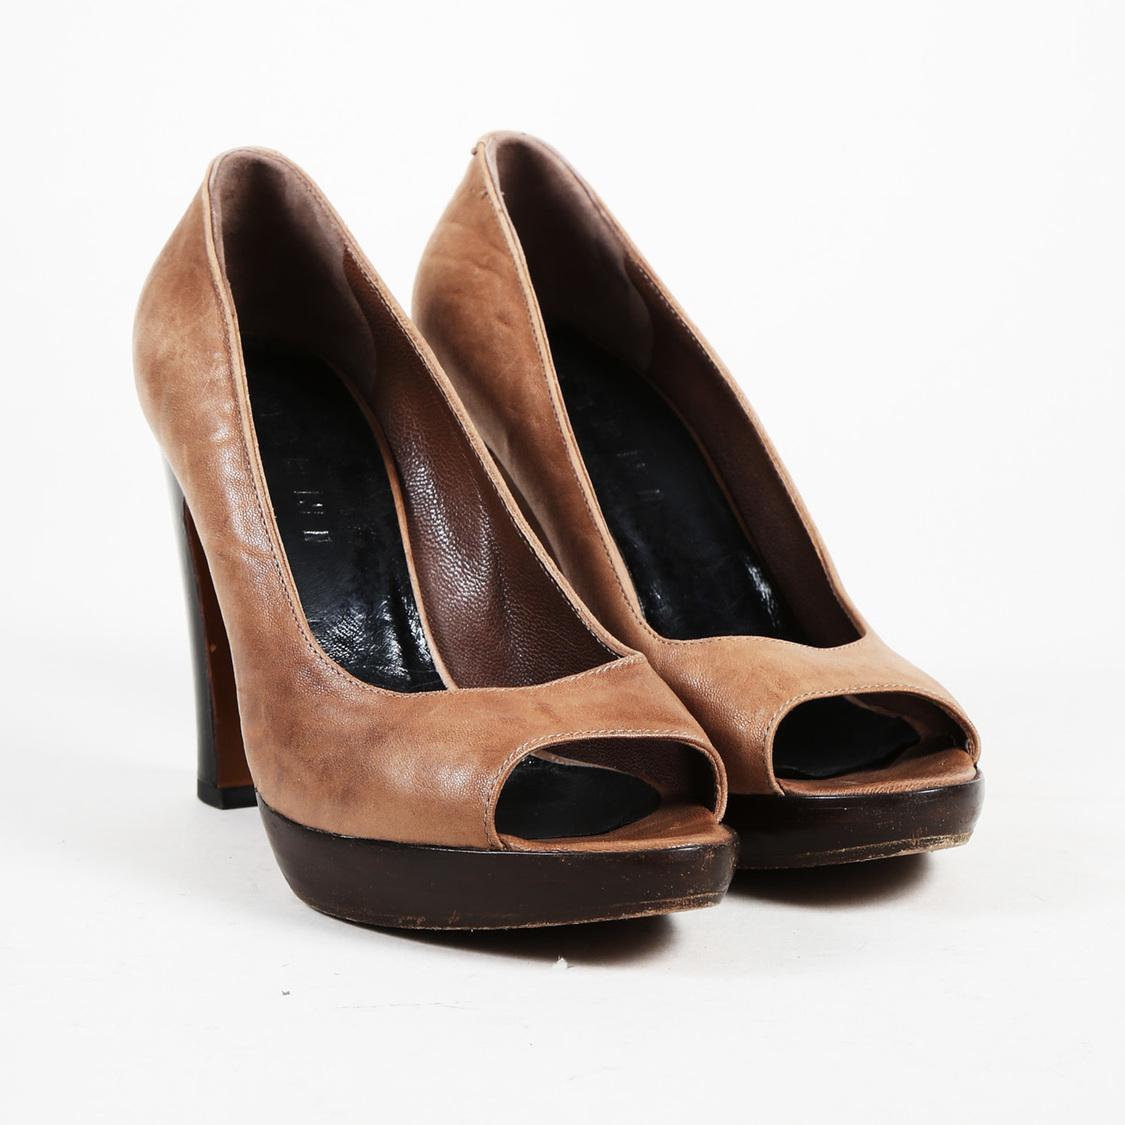 Marni Peep-Toe Suede Pumps browse cheap price new arrival for sale ODrT5GeHMN